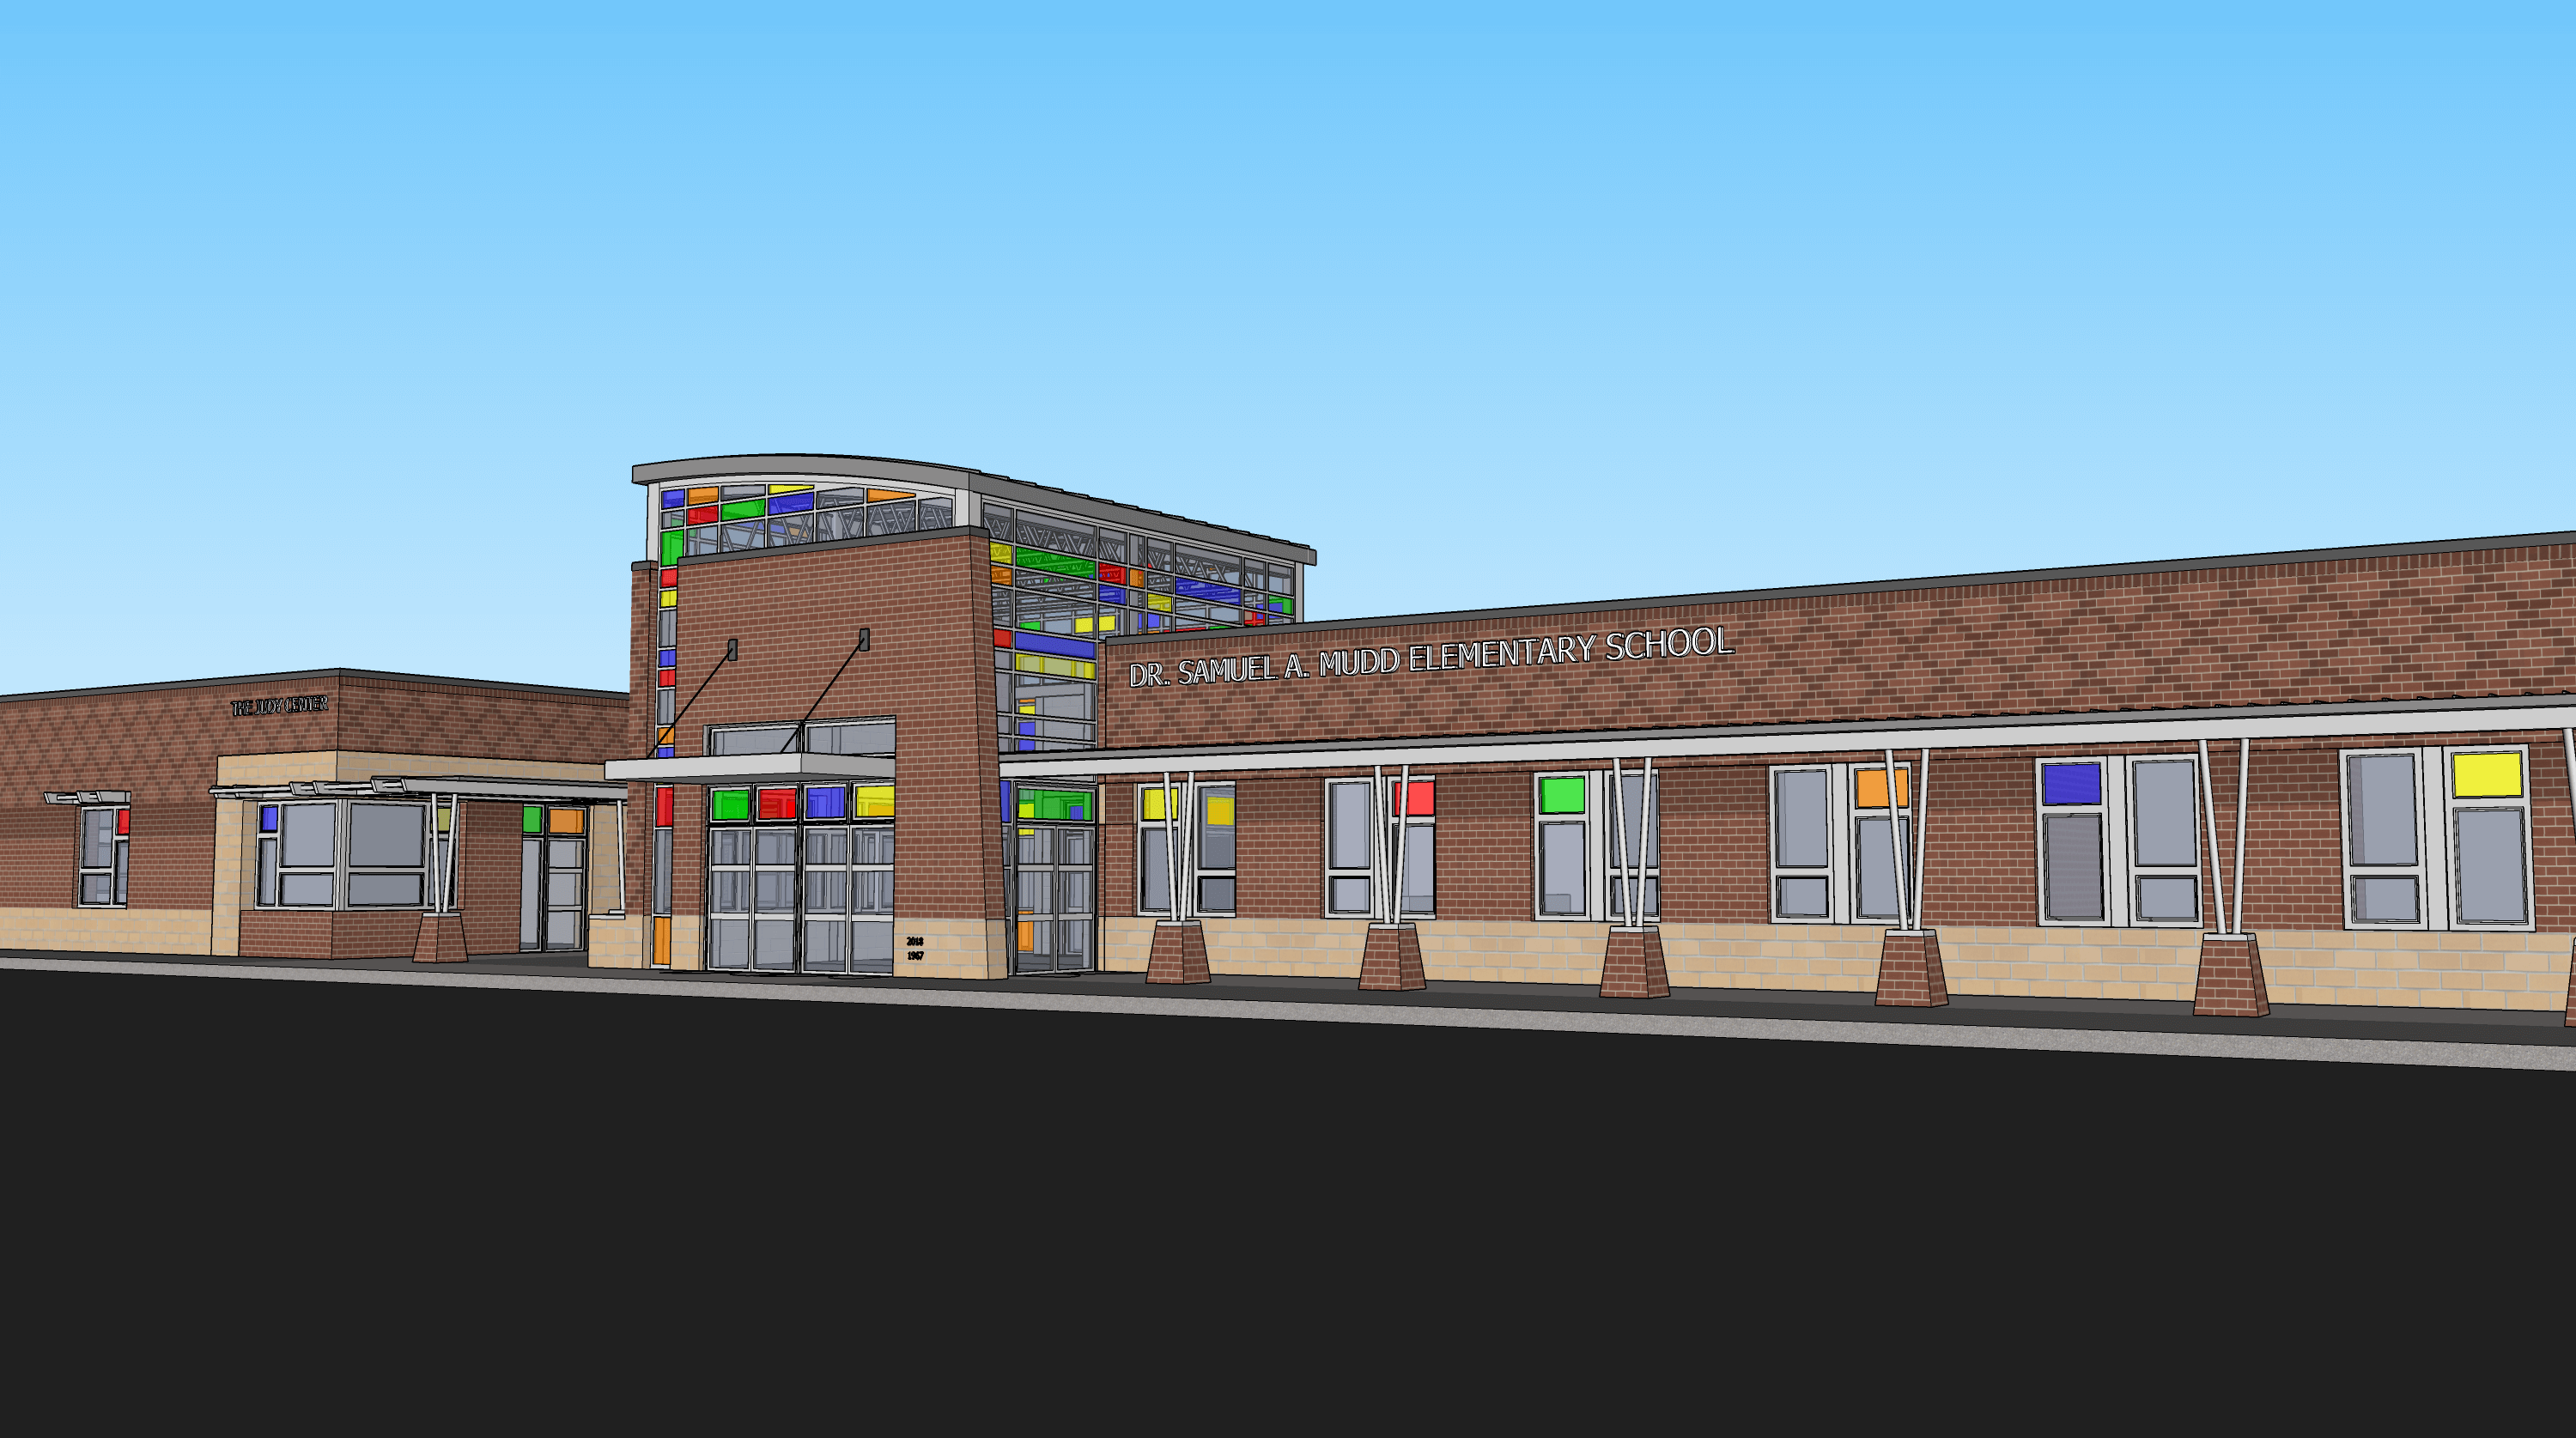 Dr Samuel Mudd Elementary School renovation